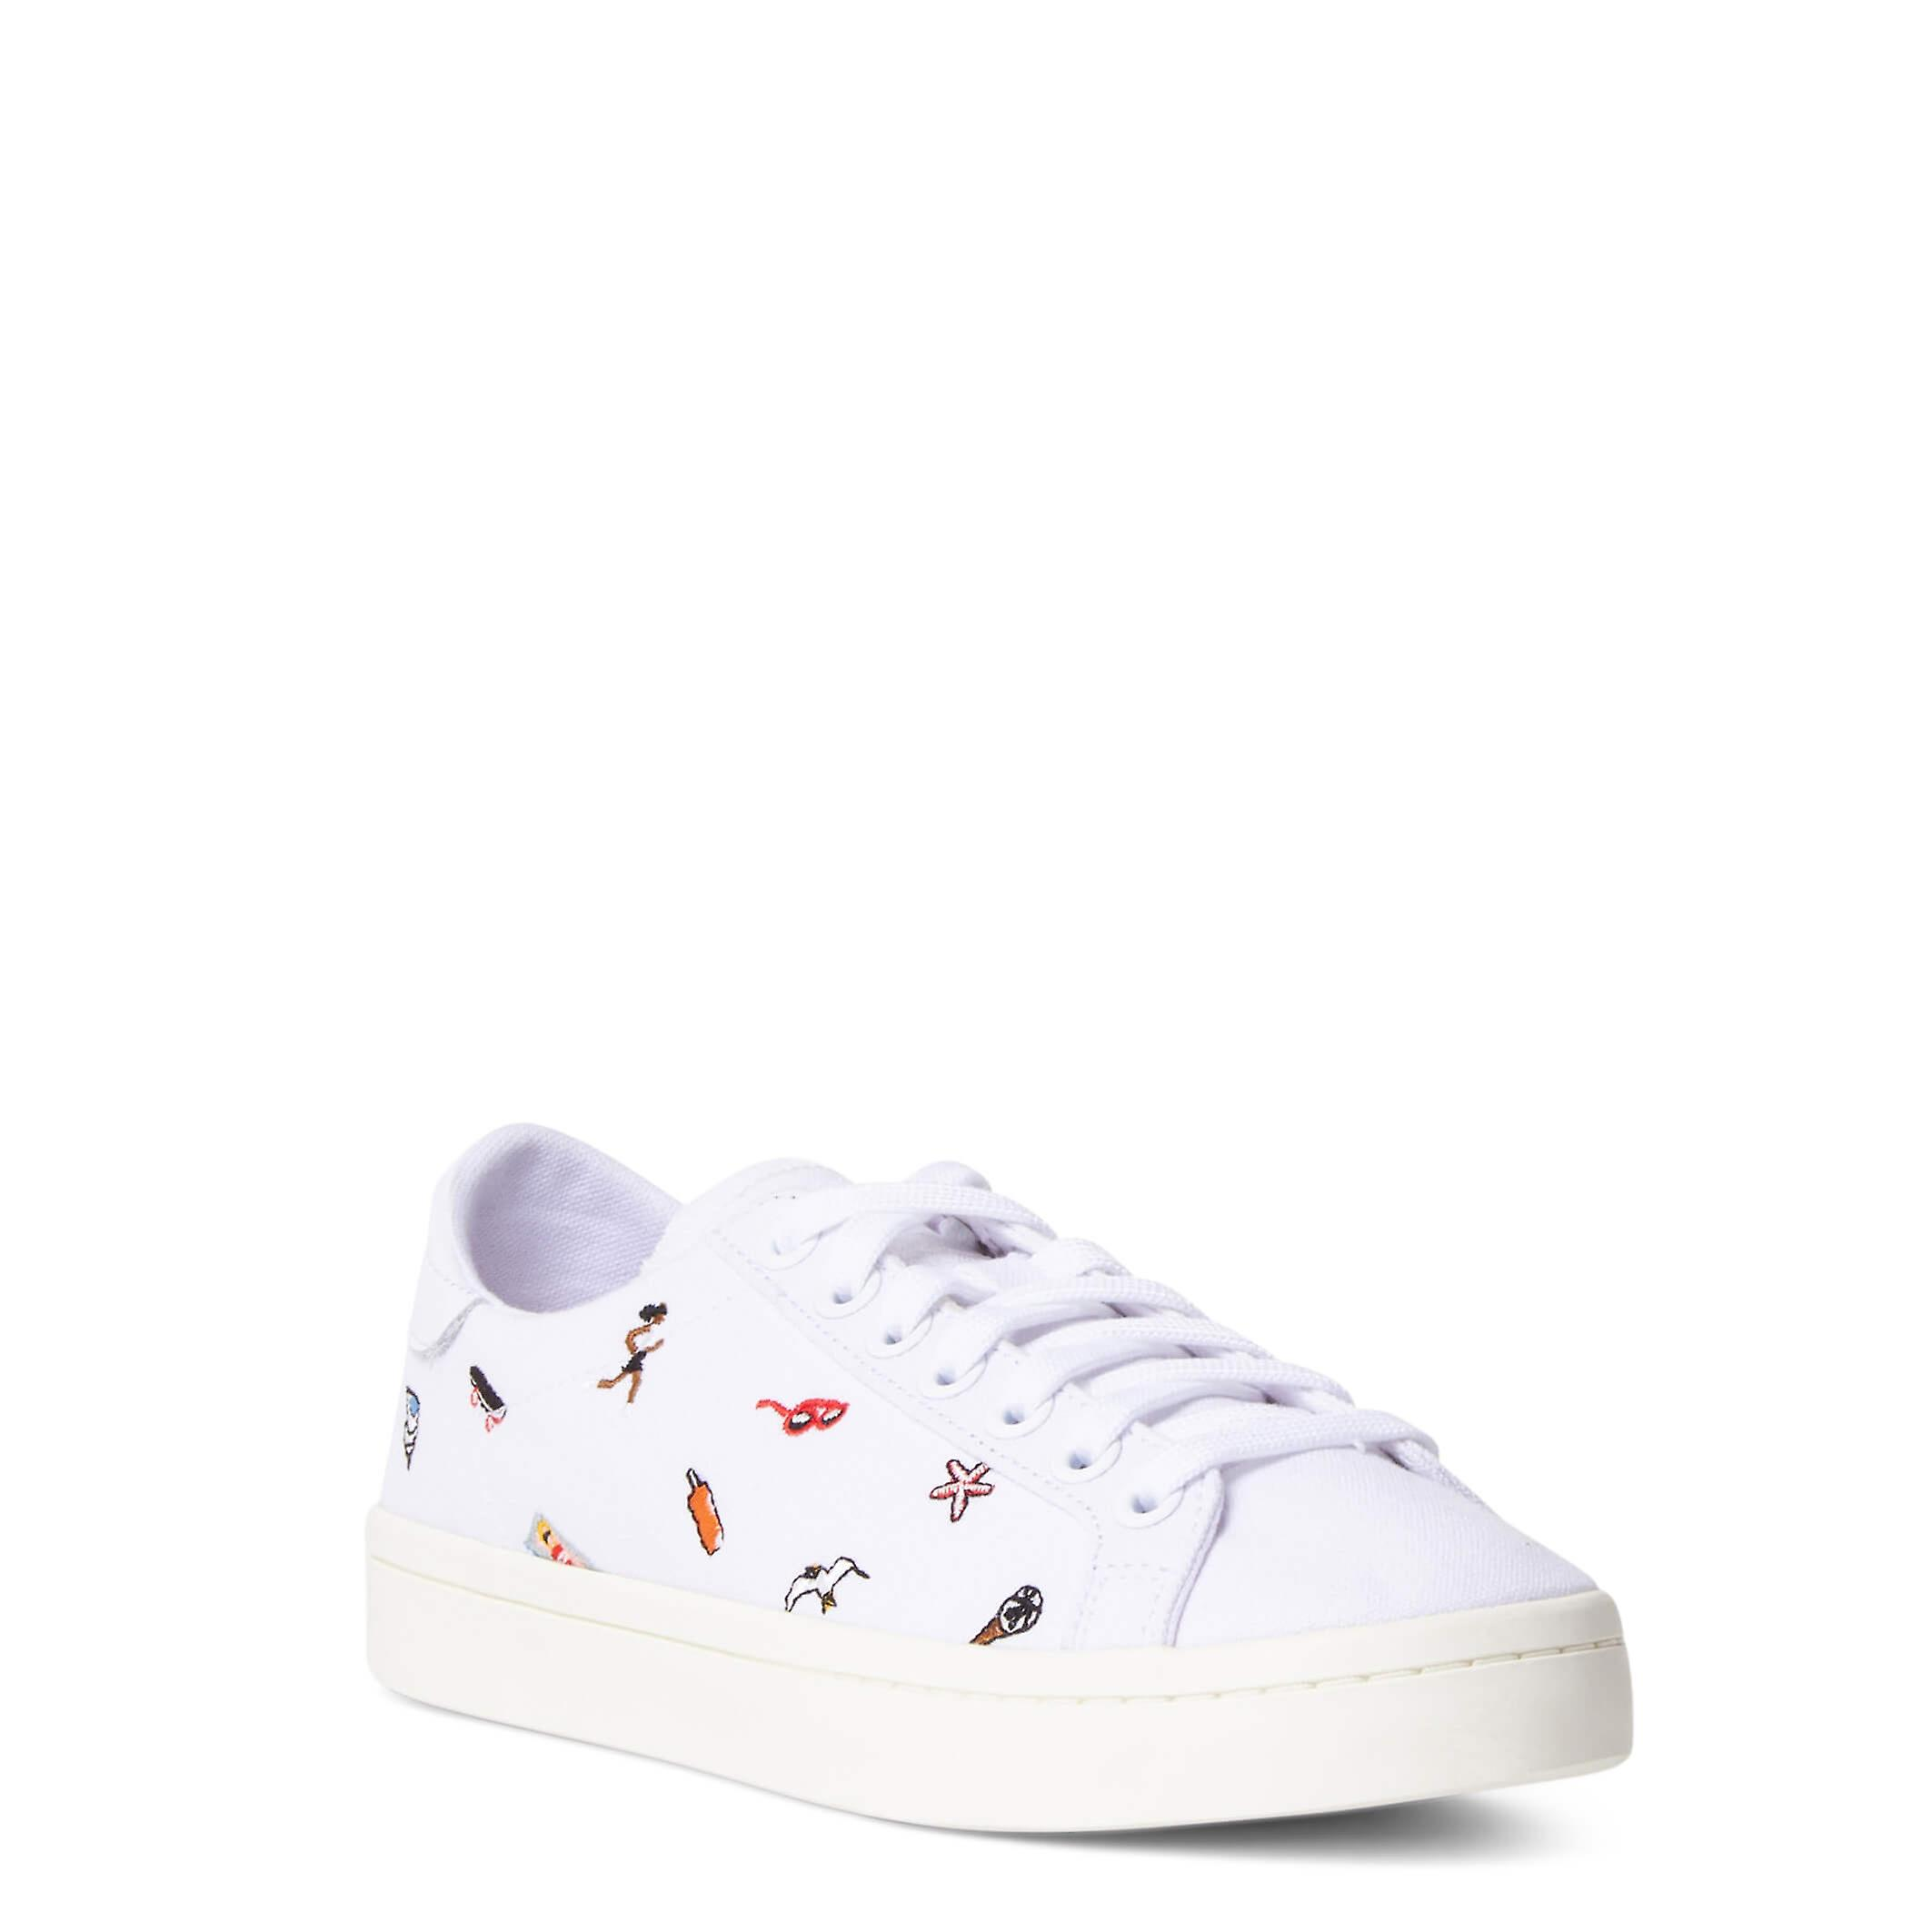 Adidas Original Women All Year Sneakers - White Color 32997 XCCqE9